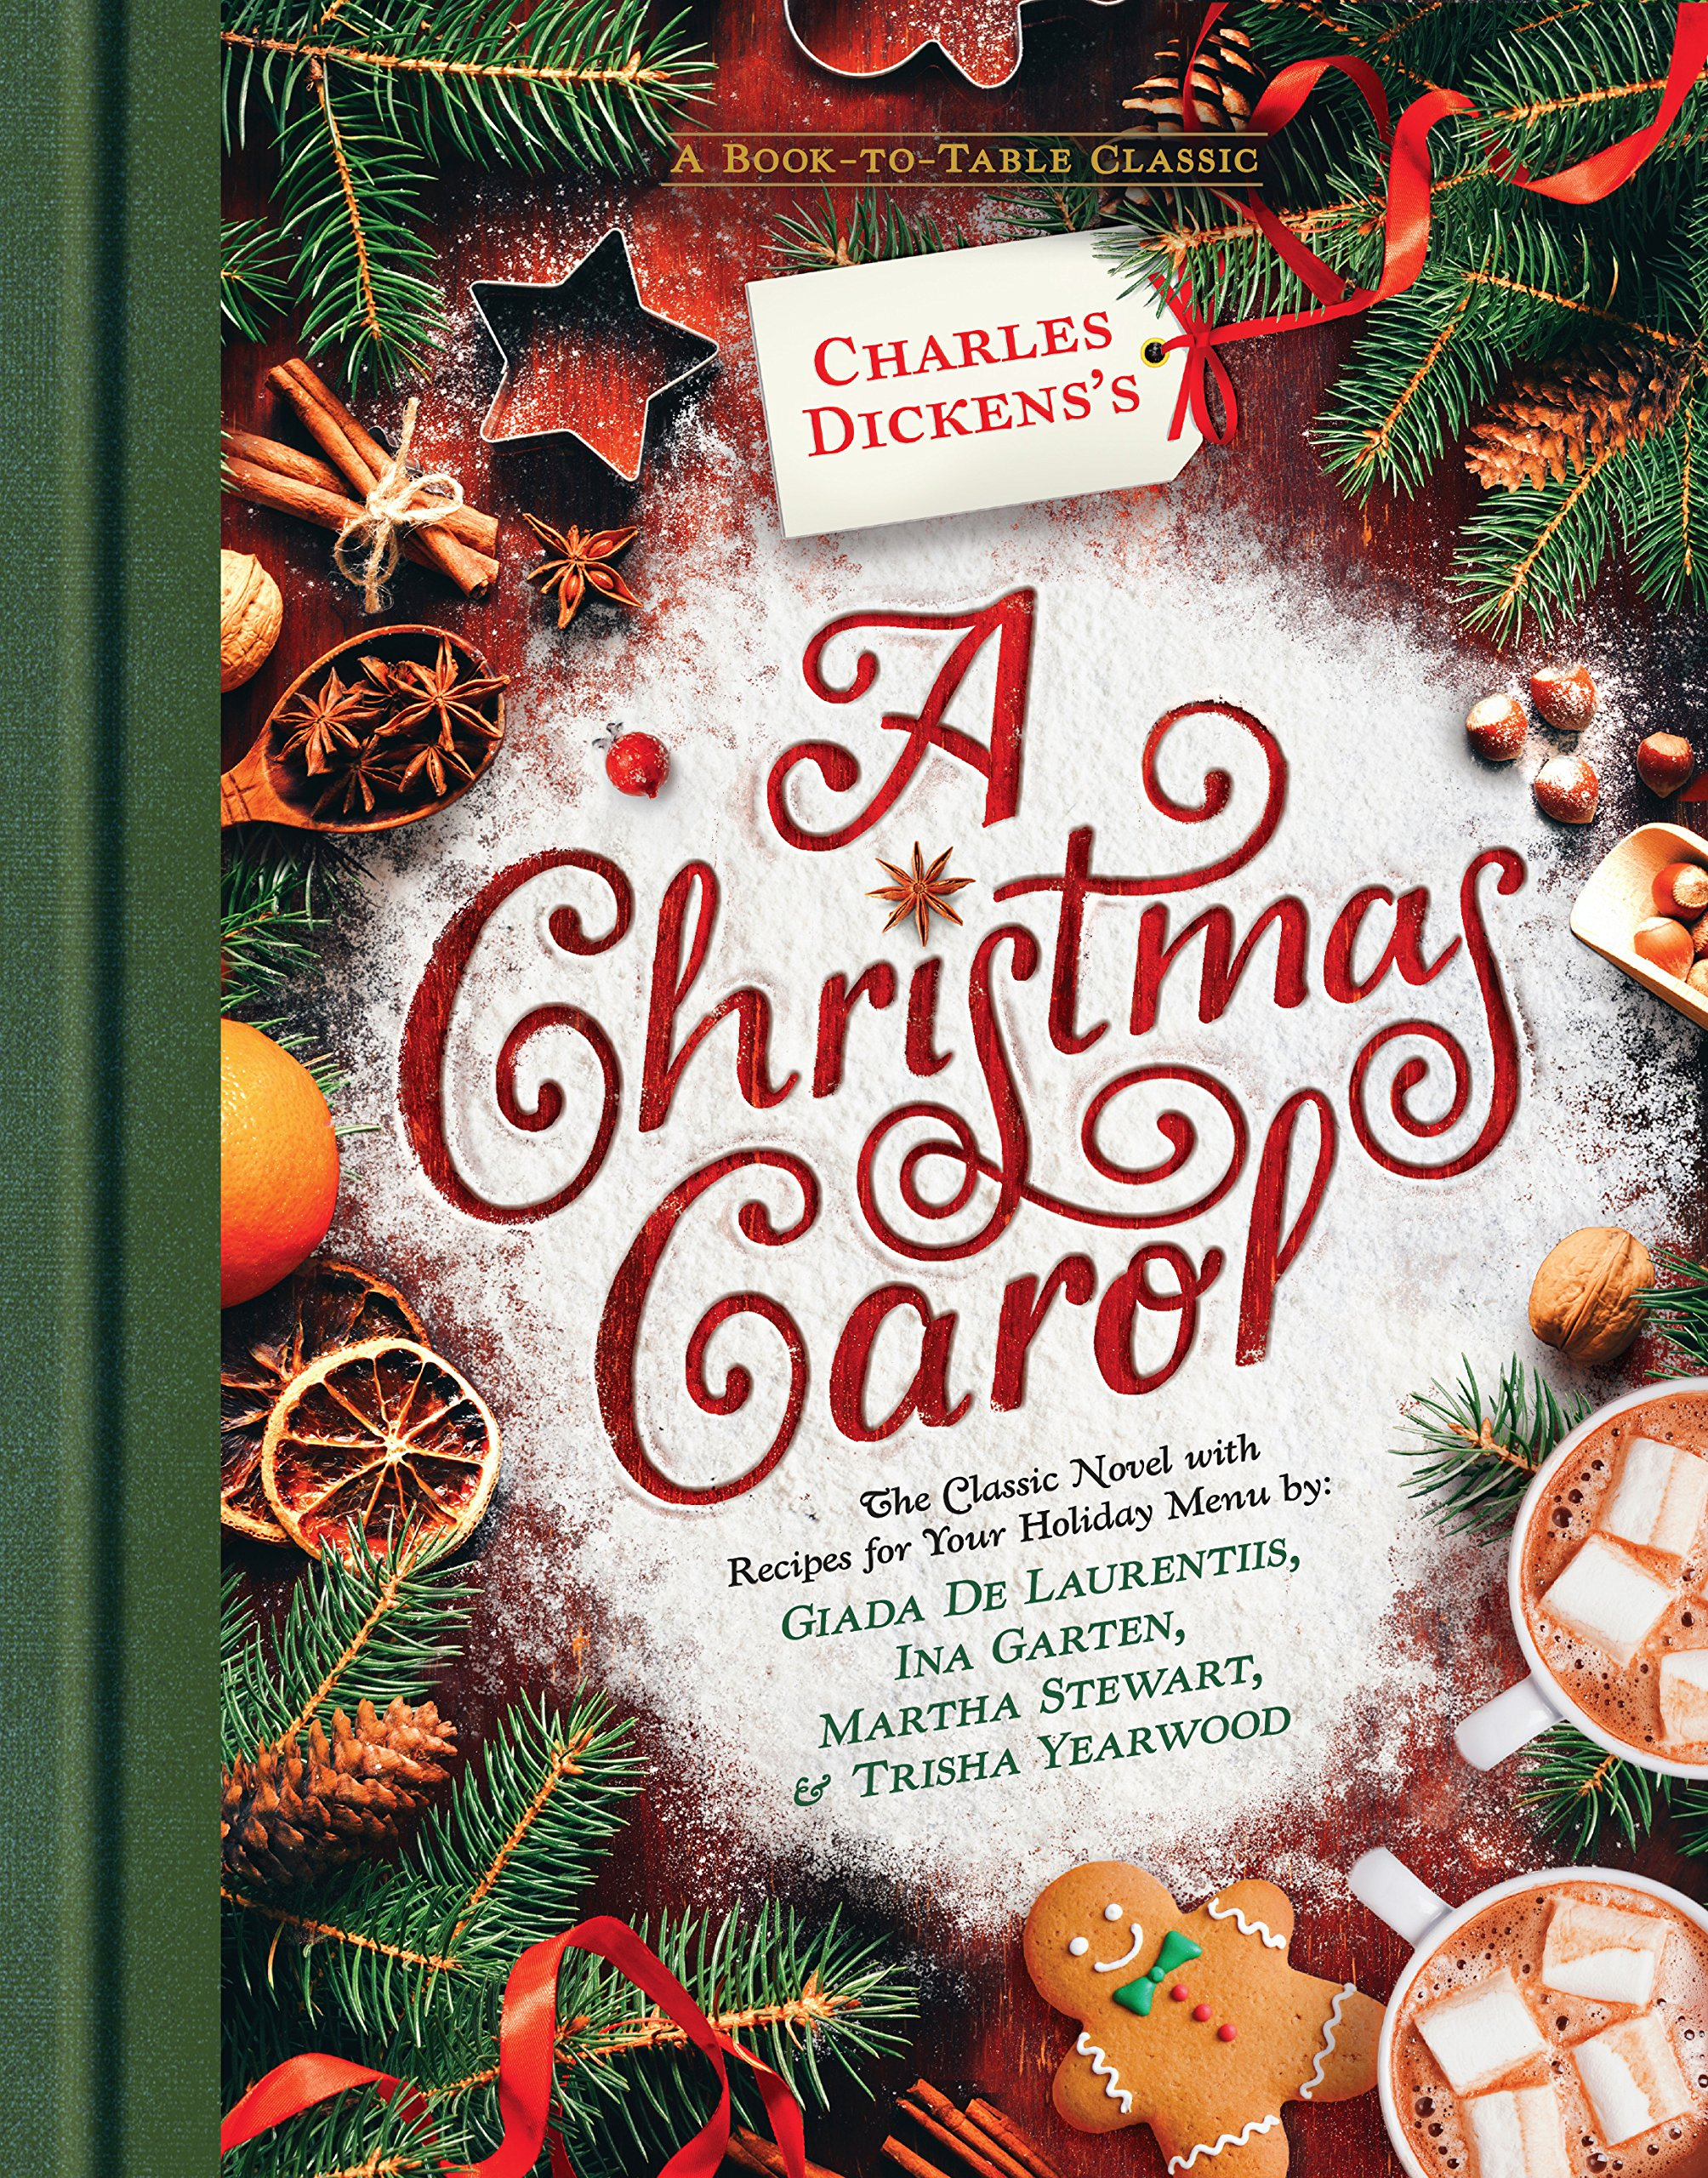 Charles Dickens's A Christmas Carol: A Book-to-Table Classic (Puffin Plated) Hardcover – October 16, 2018 Puffin Books 0451479920 Christmas; Fiction. Cookbooks.